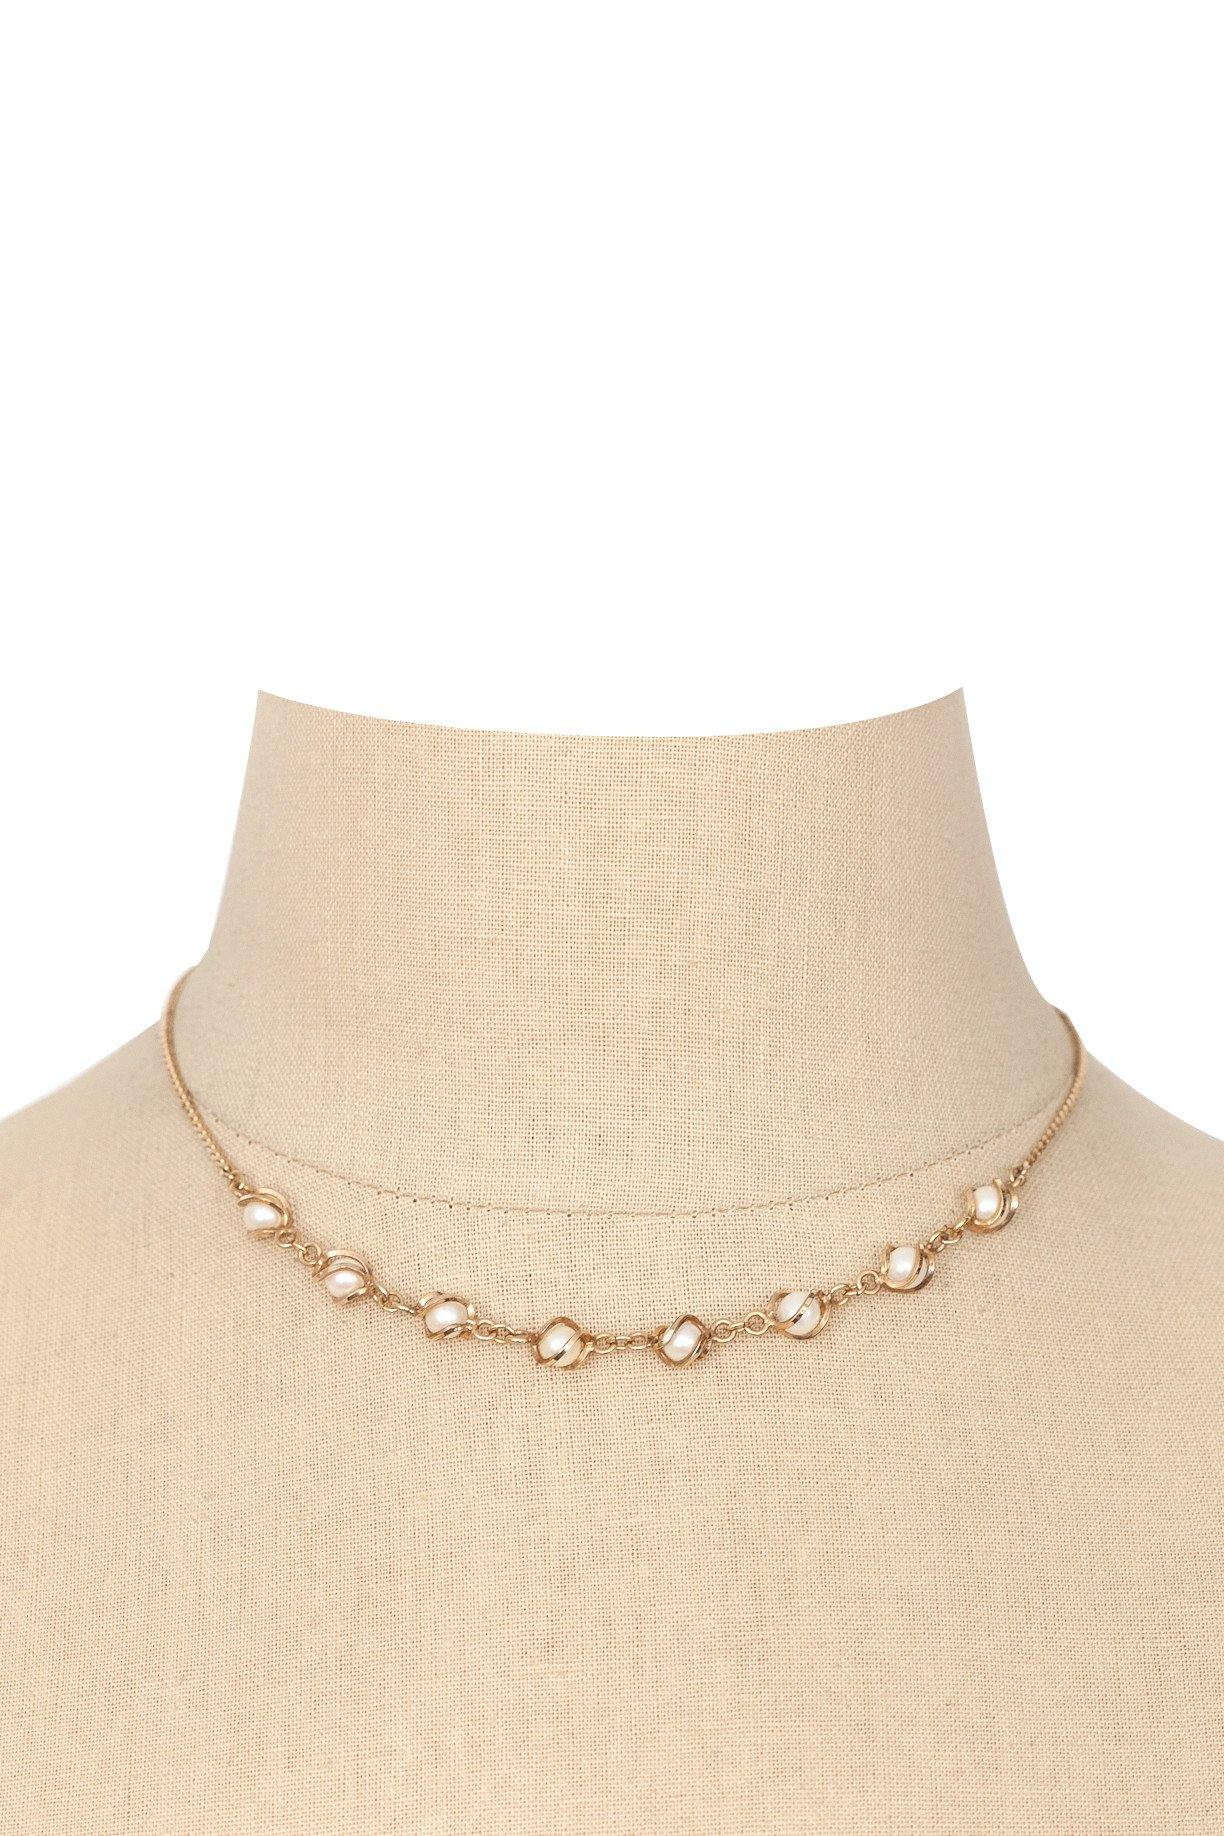 70's__Vintage__Dainty Pearl Necklace